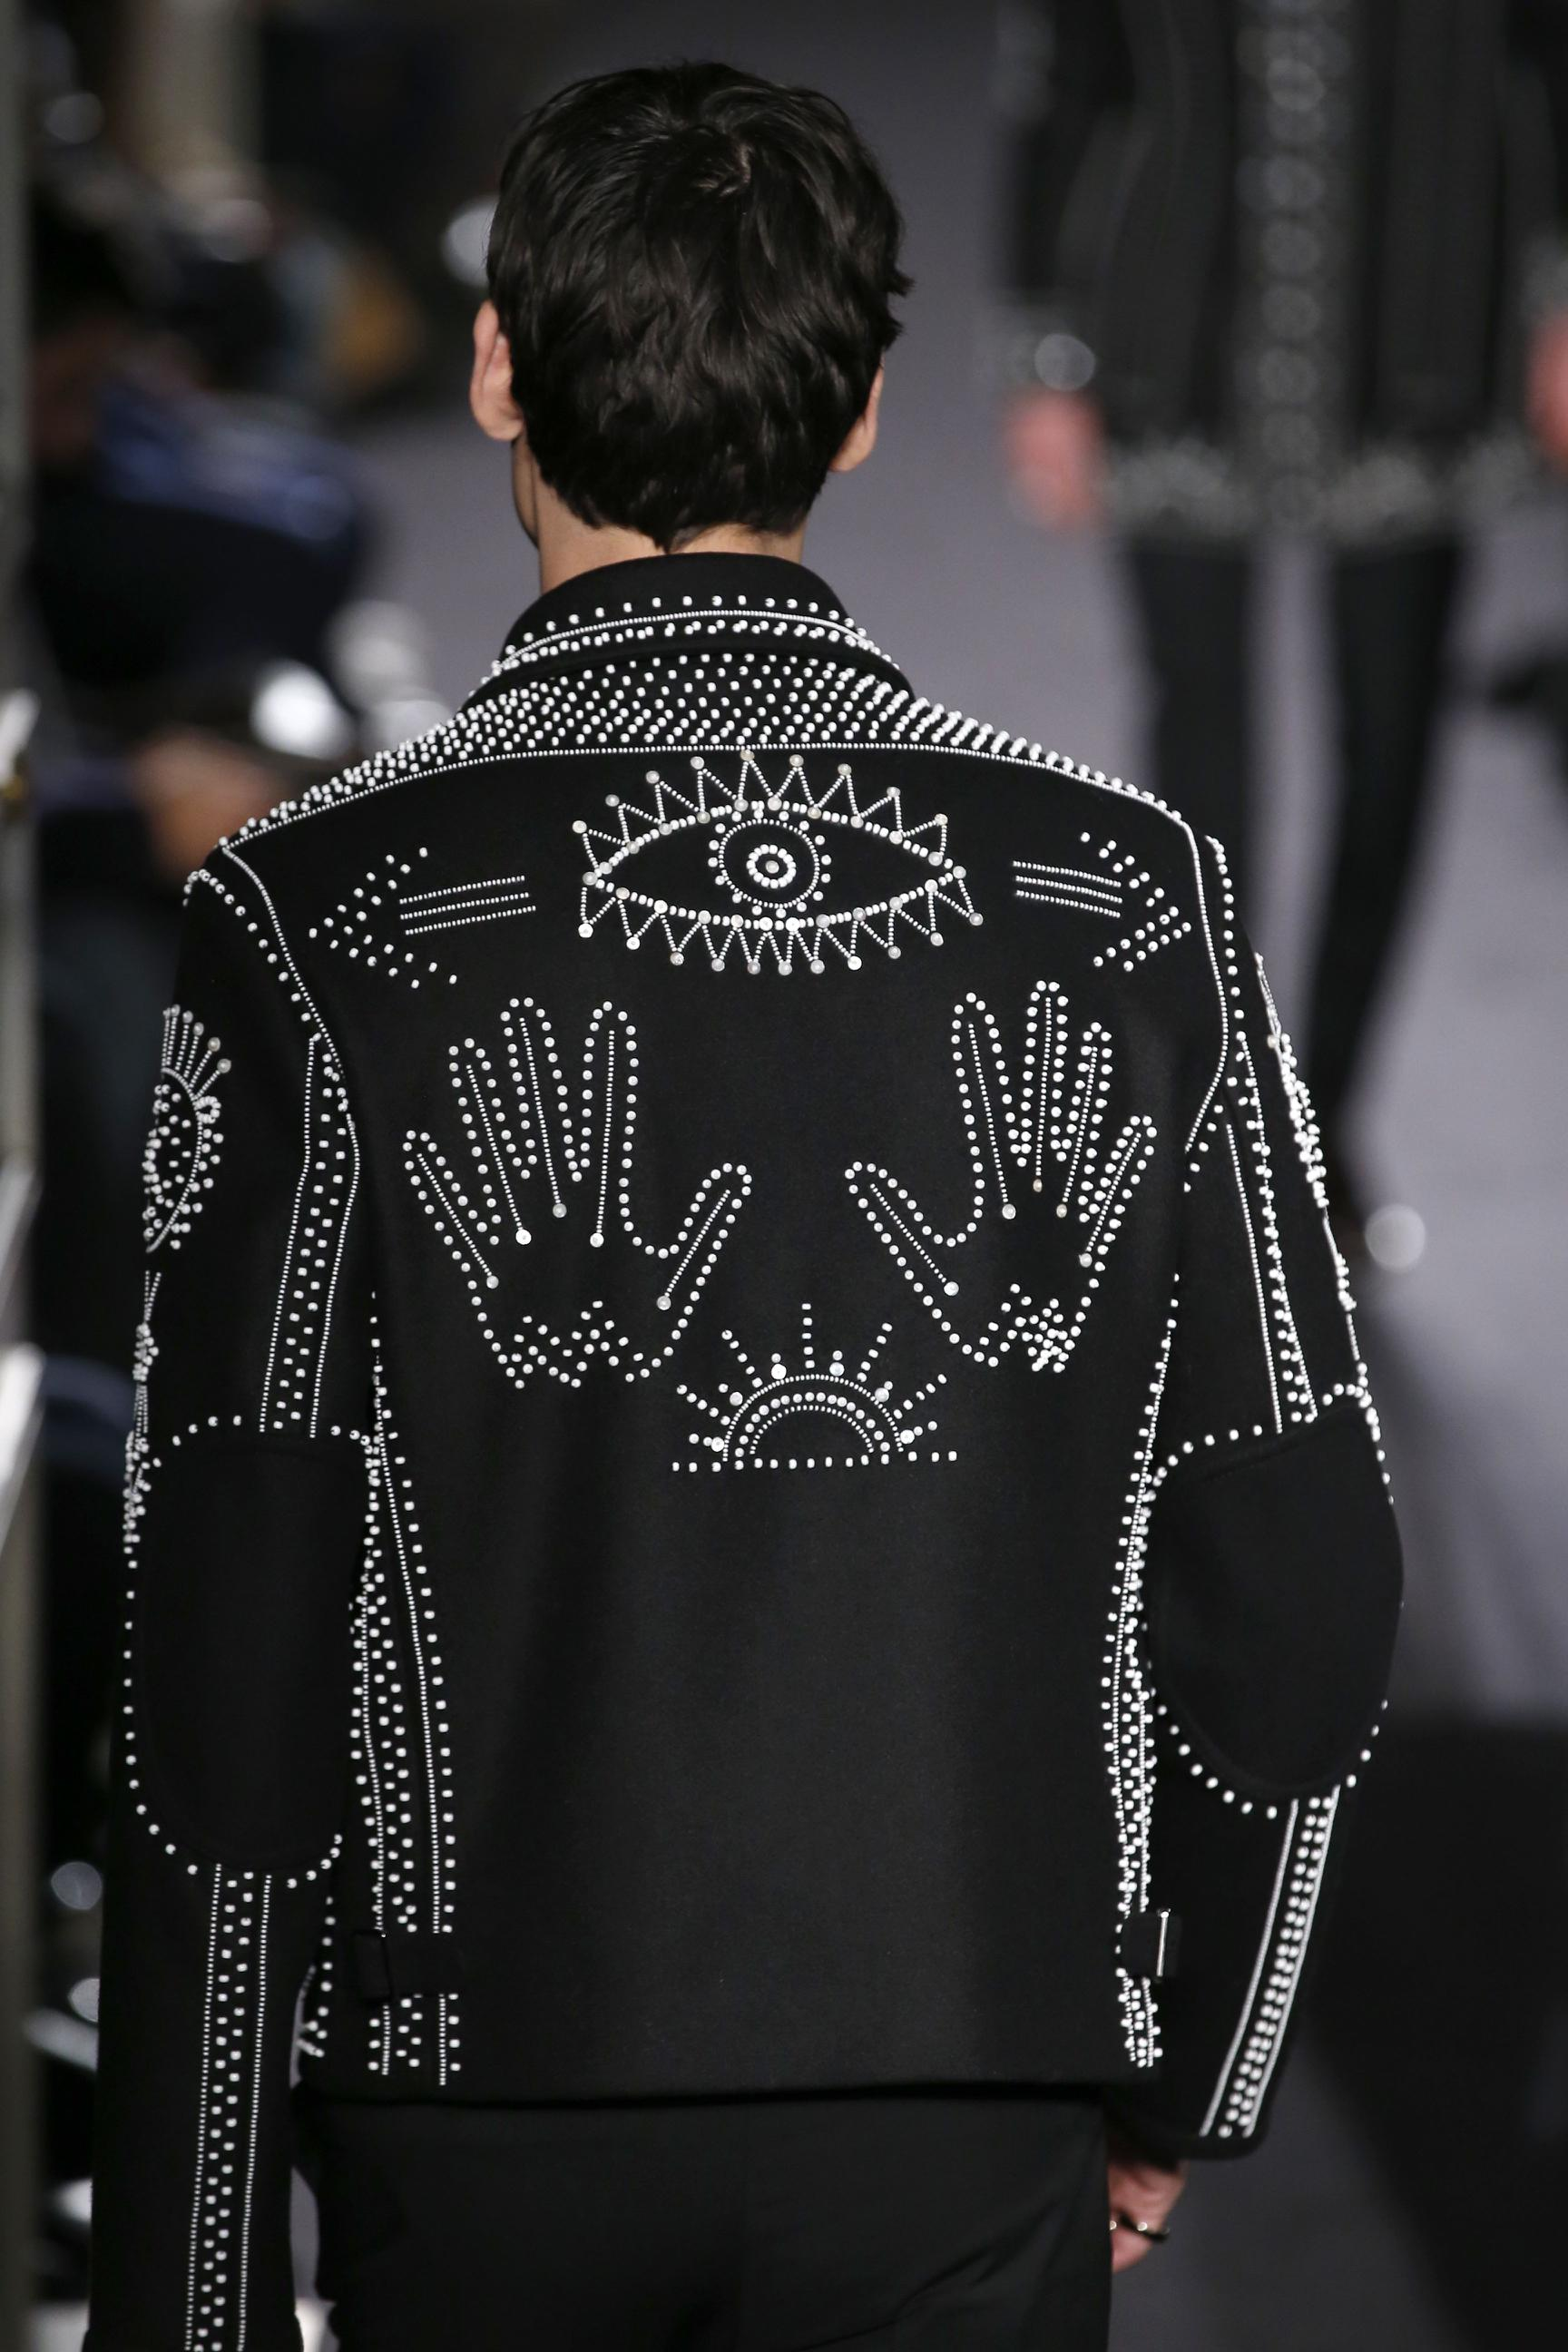 A model presents a creation by Valentino during men's Fashion Week for the Fall/Winter 2016/2017 collection in Paris on January 20, 2016. / AFP / PATRICK KOVARIK (Photo credit should read PATRICK KOVARIK/AFP/Getty Images)